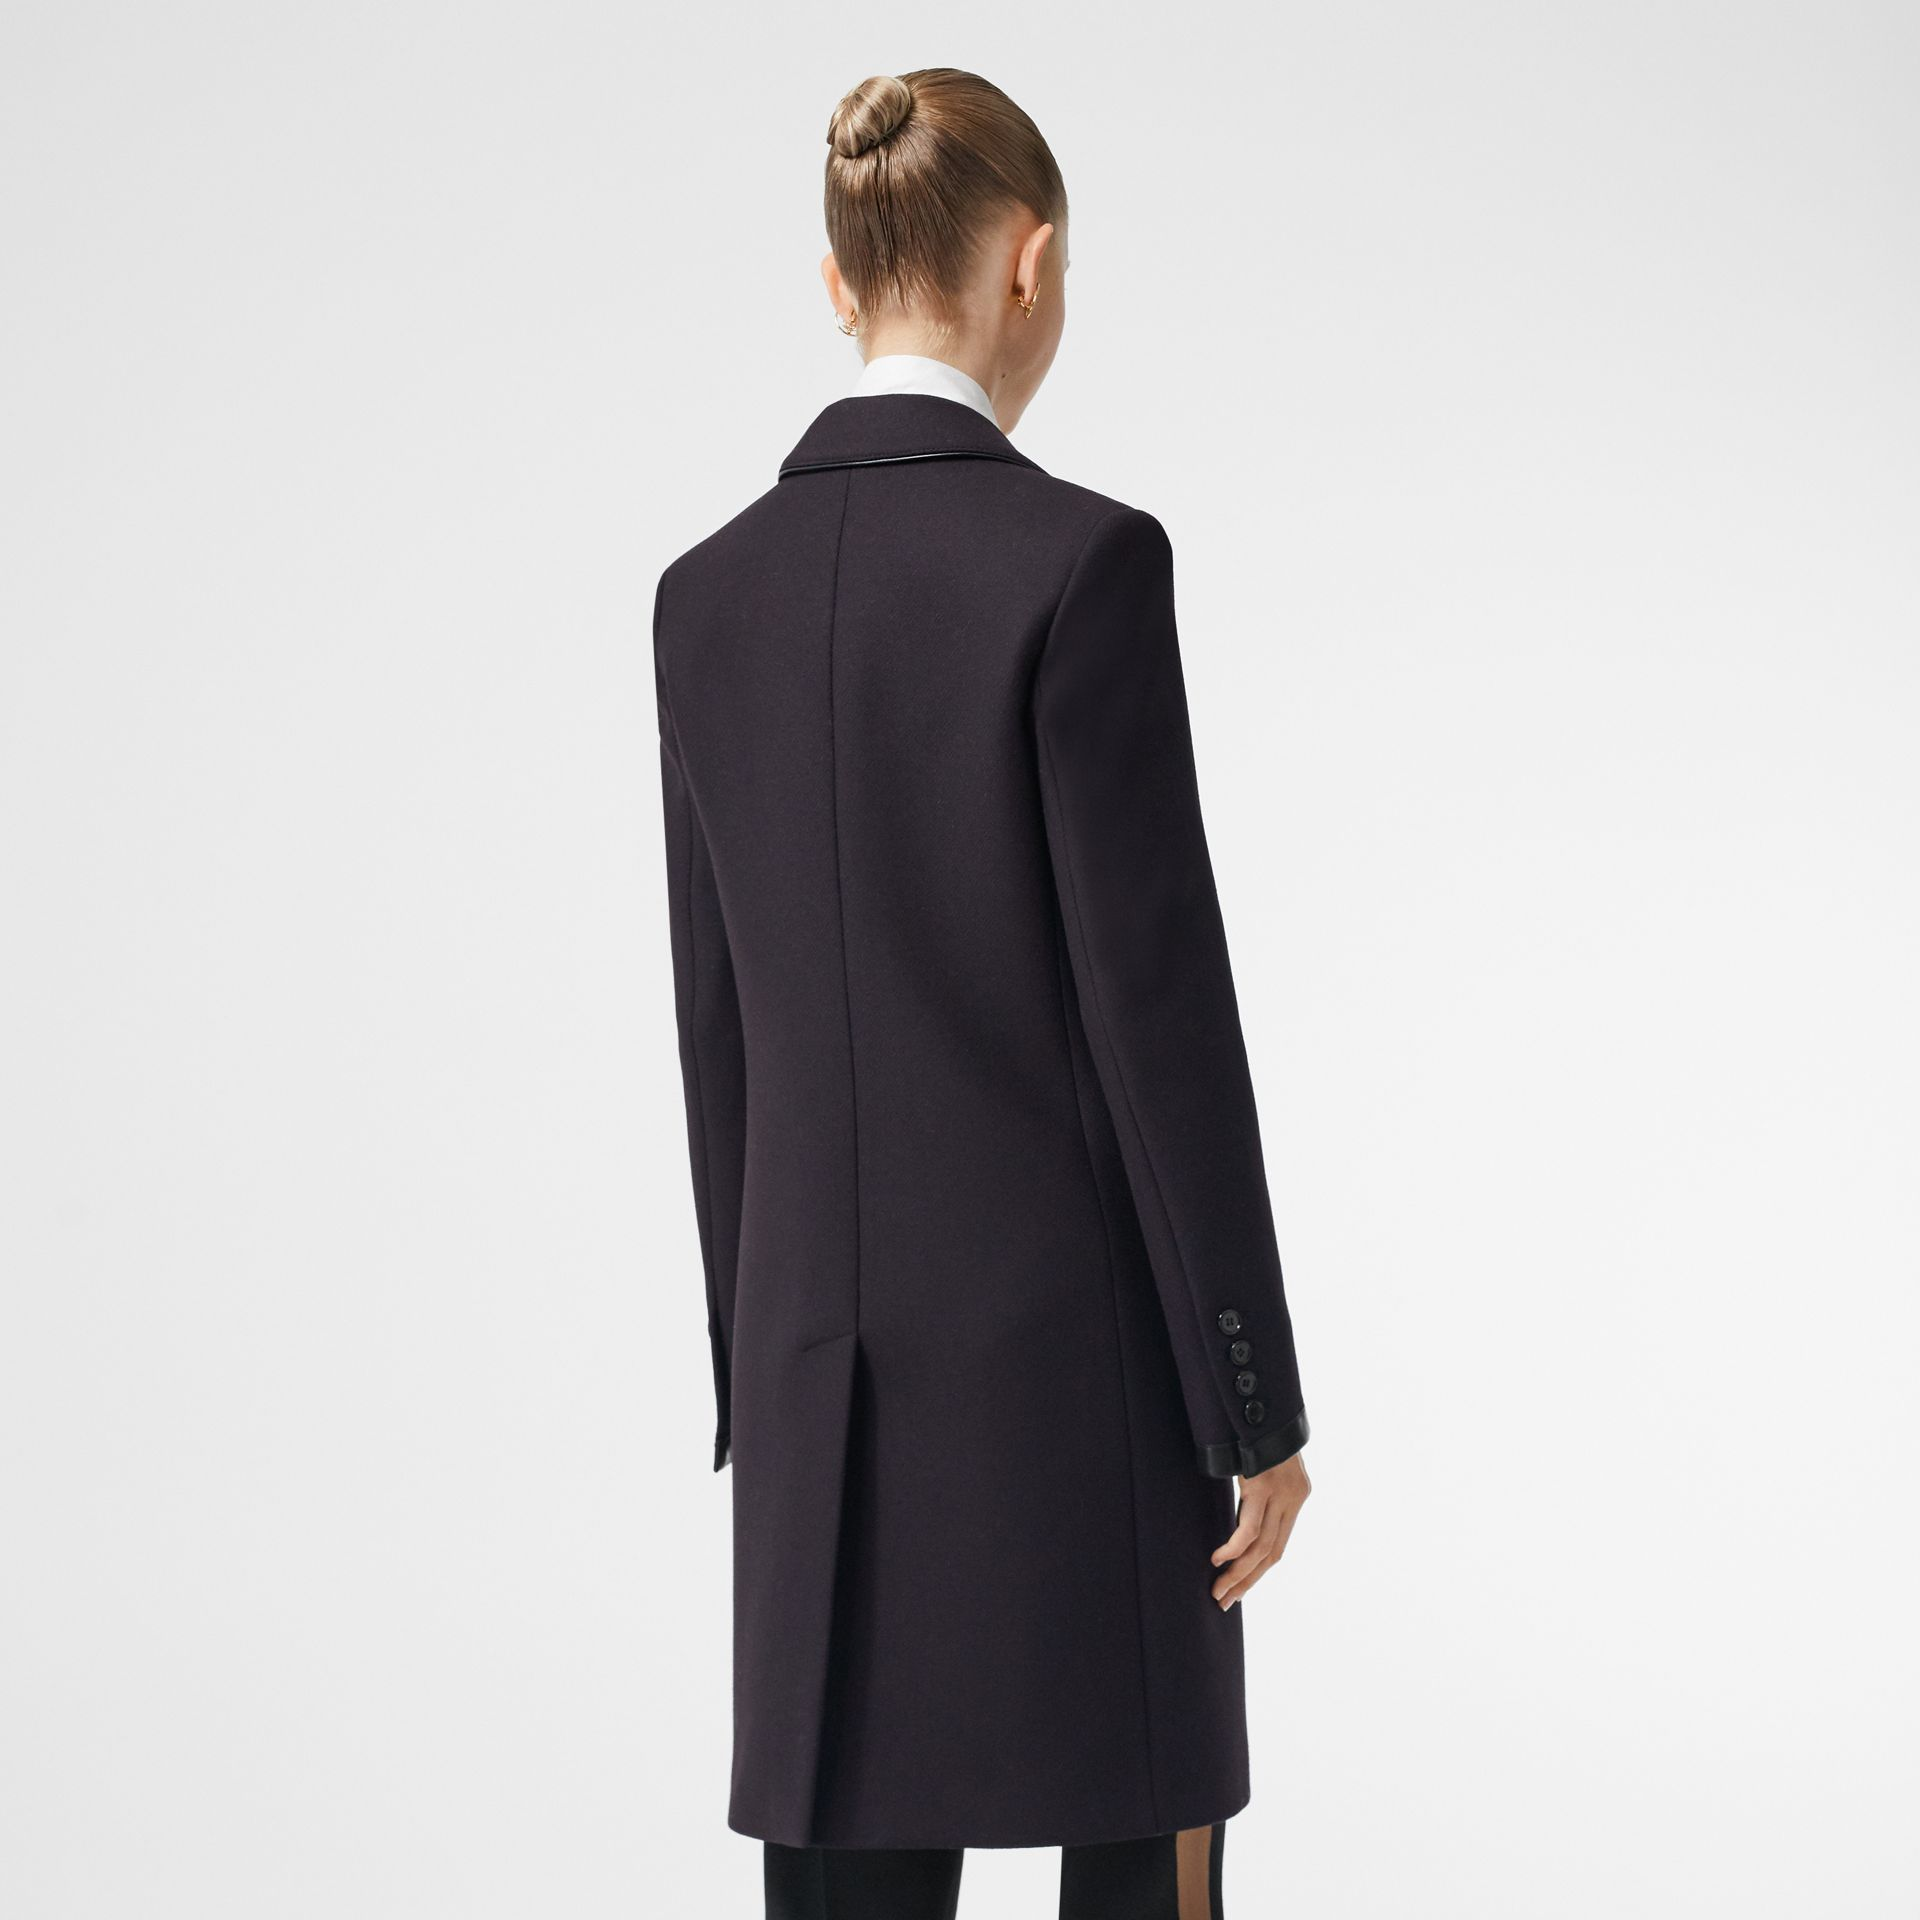 Lambskin Trim Wool Cashmere Blend Tailored Coat in Black Maroon - Women | Burberry - gallery image 1